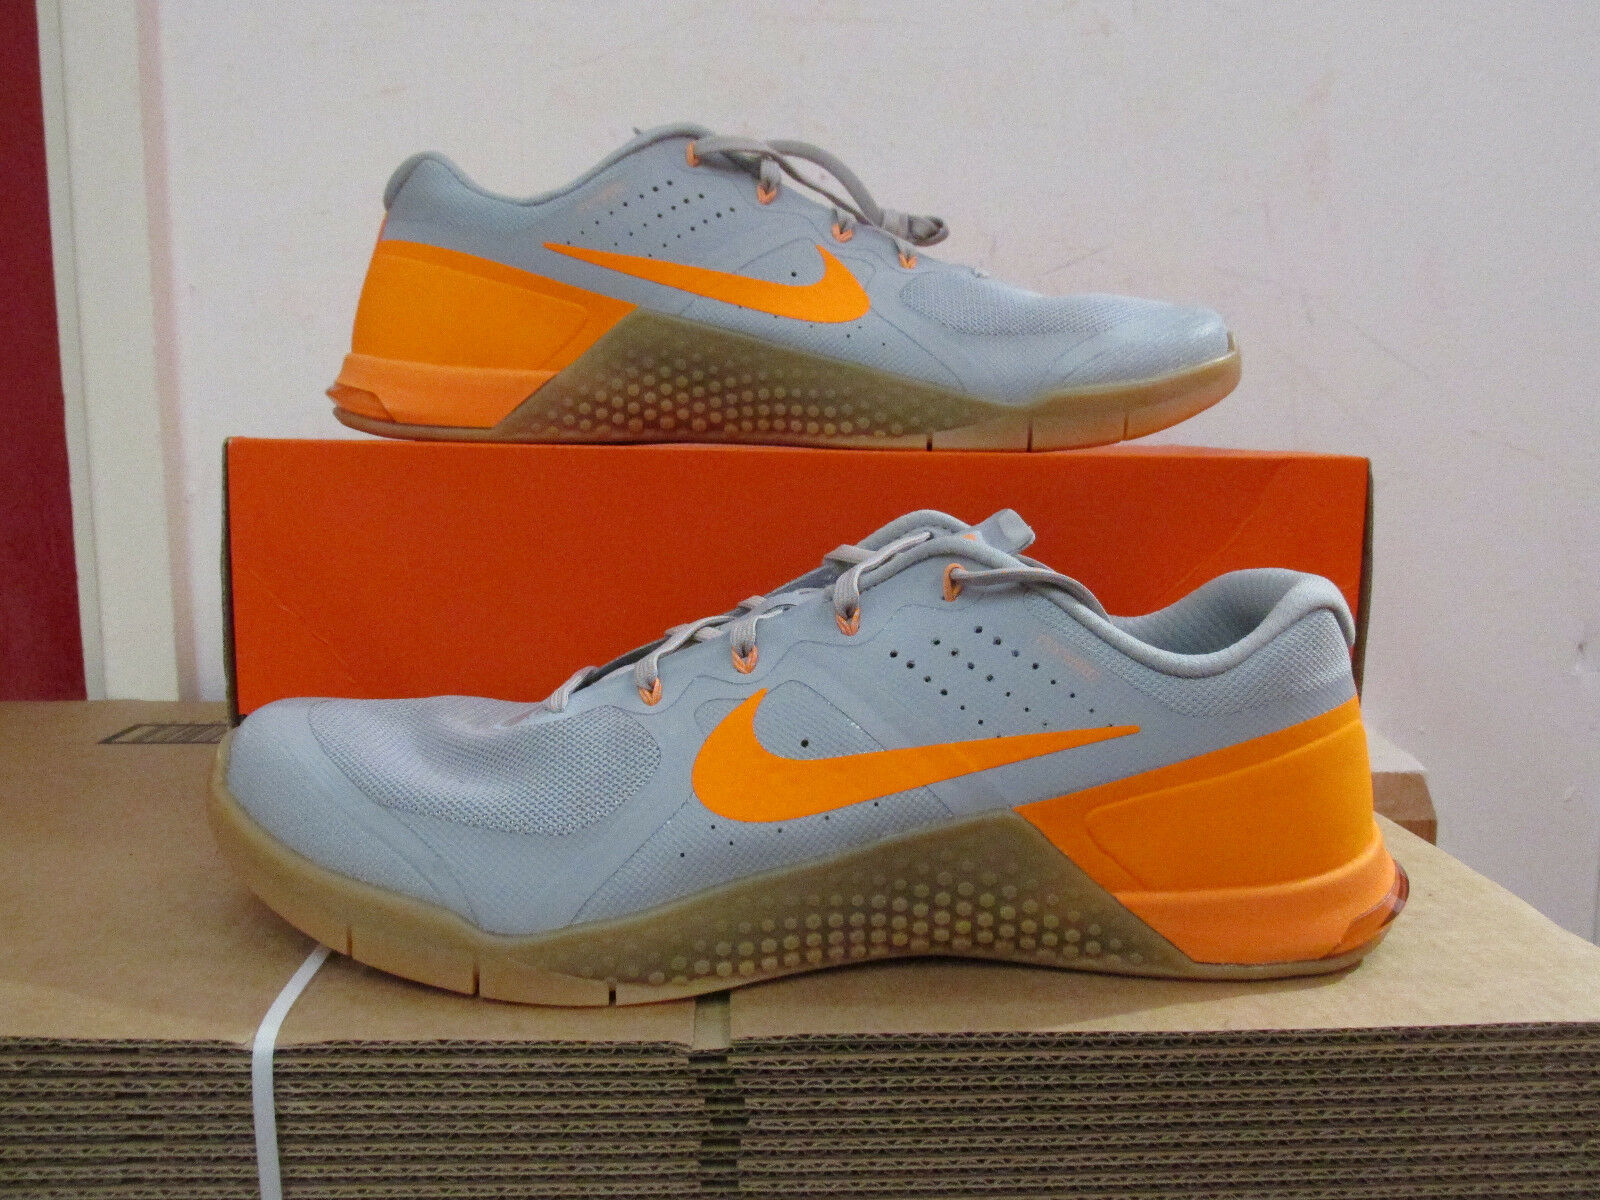 6f2c98bdf nike metcon 2 mens running running running trainers 819899 005 sneakers  shoes CLEARANCE 474539